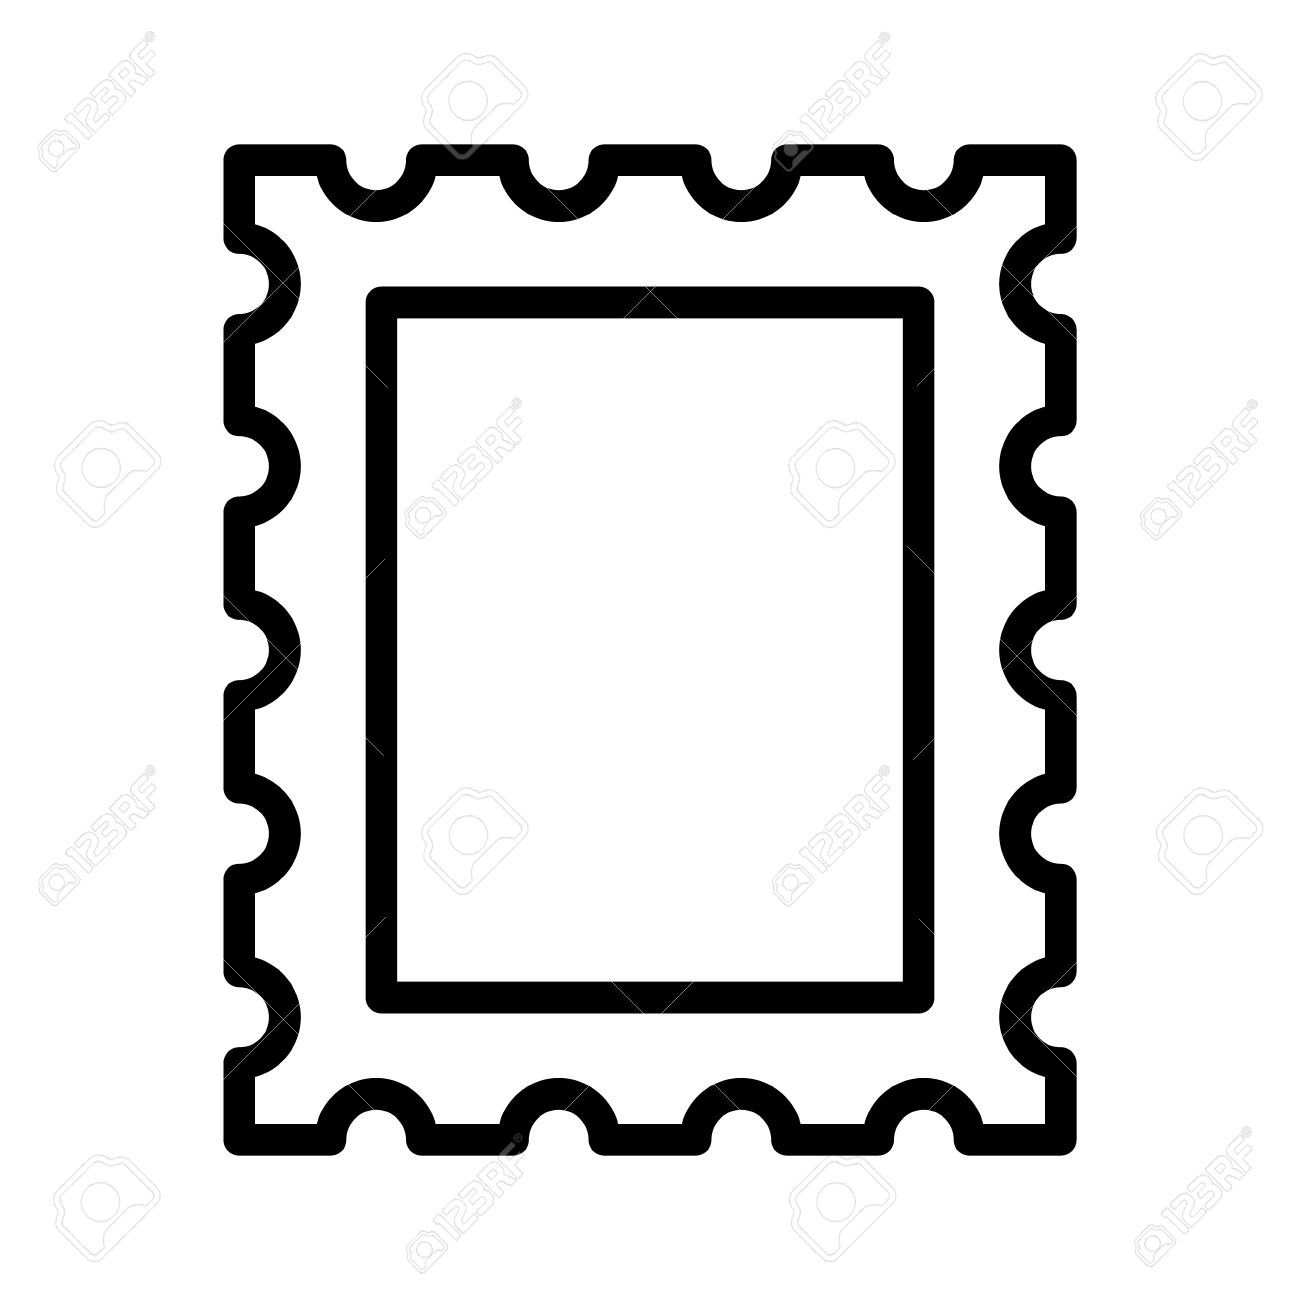 Complete stamp clipart jpg royalty free download Stamp Clipart | Free download best Stamp Clipart on ClipArtMag.com jpg royalty free download